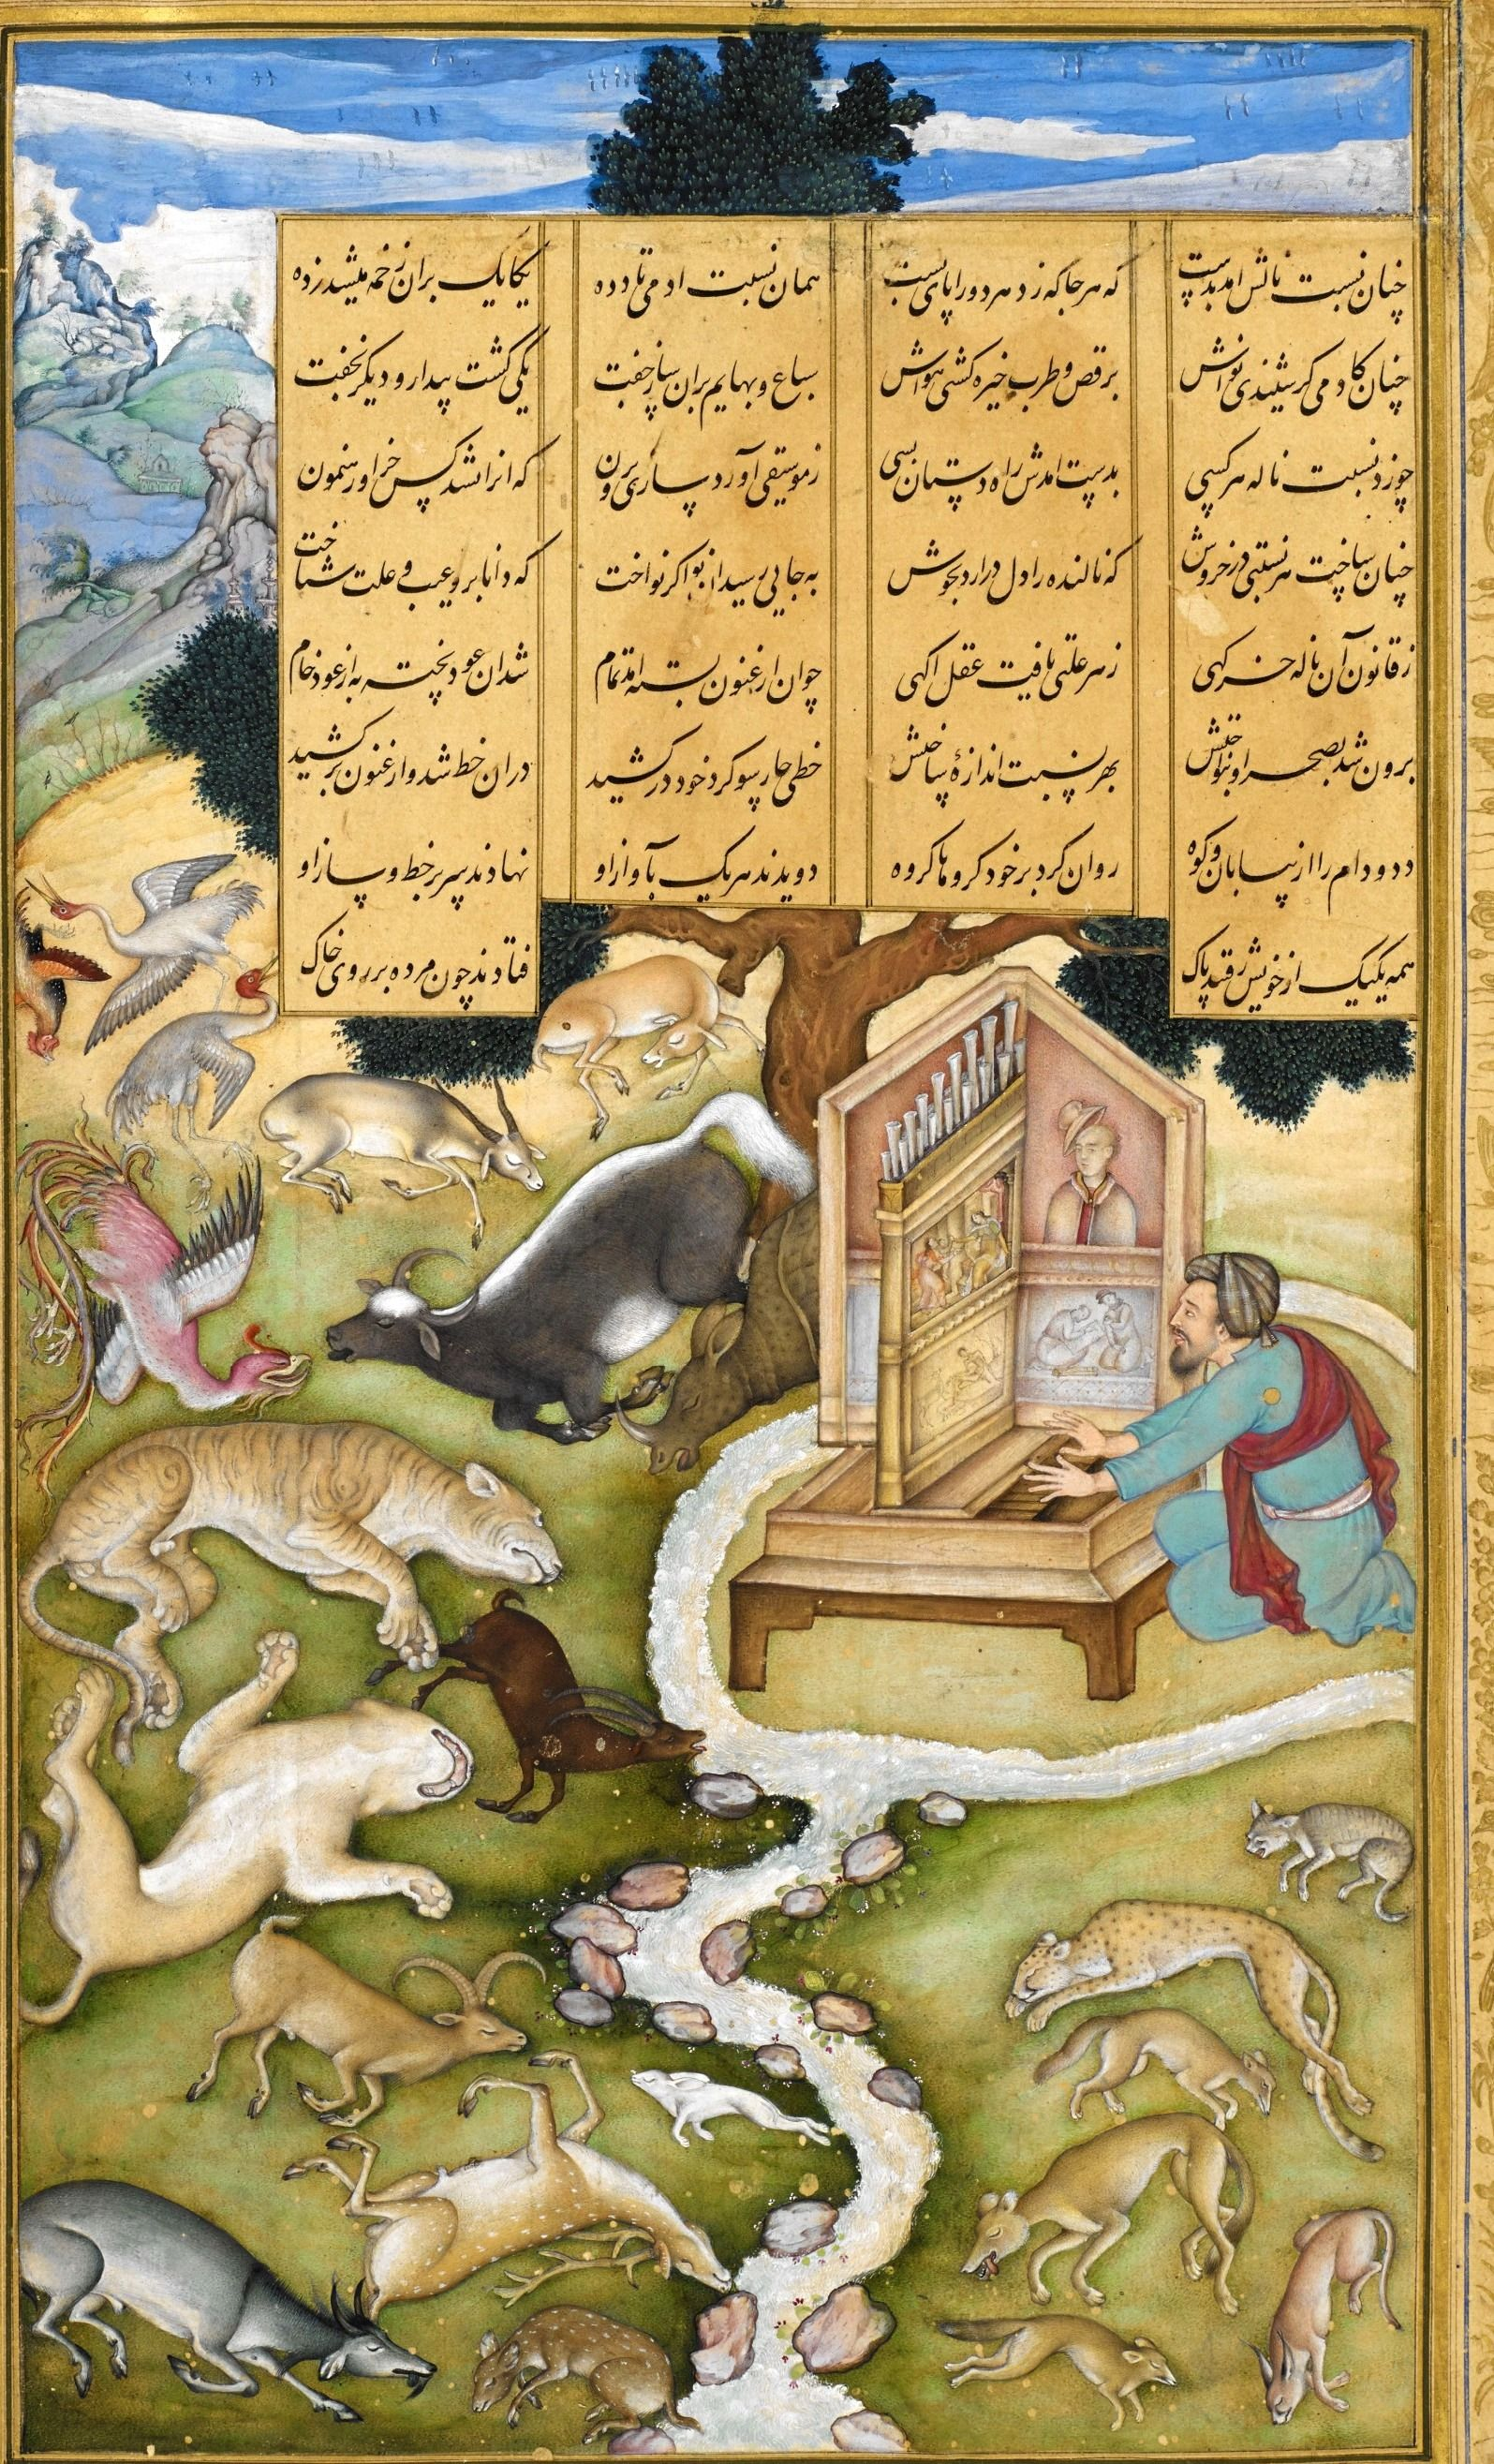 Mughal miniature of Plato and a group of sleeping animals.